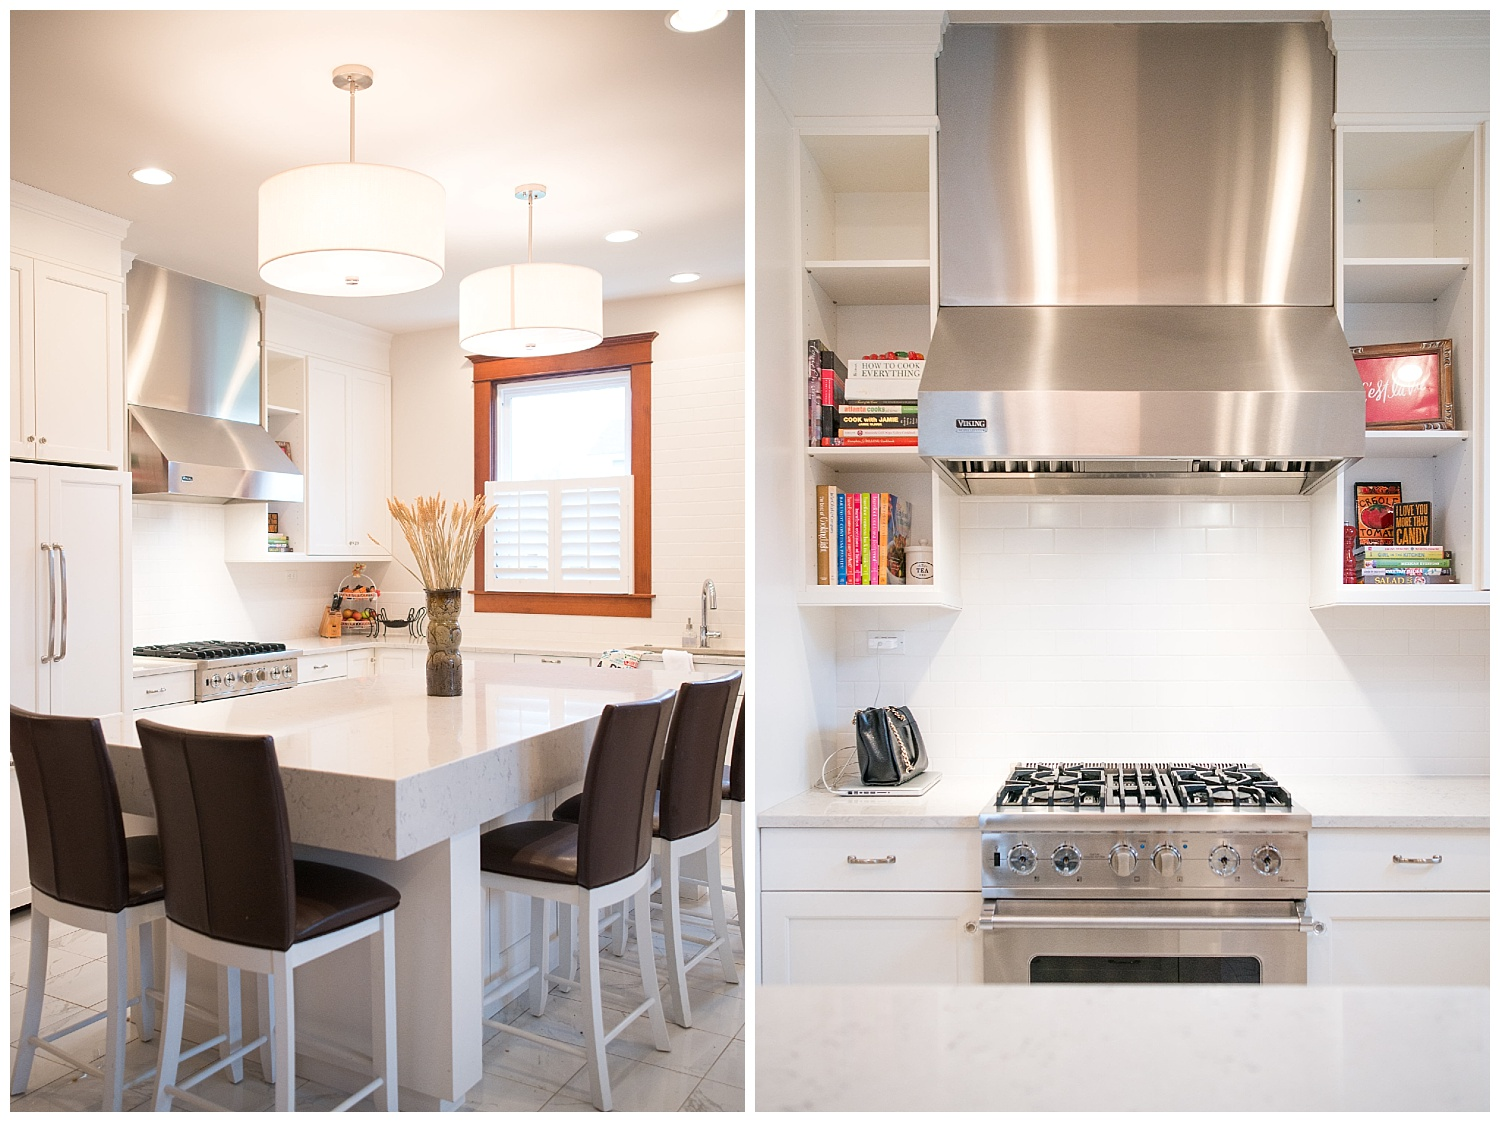 See what I mean about modern in a historic home? Her appliances came from  Probst Refrigeration  in Effingham and lighting came from the  Altamont Home Center . This sleek kitchen is where she makes her Toll House cookies. : )